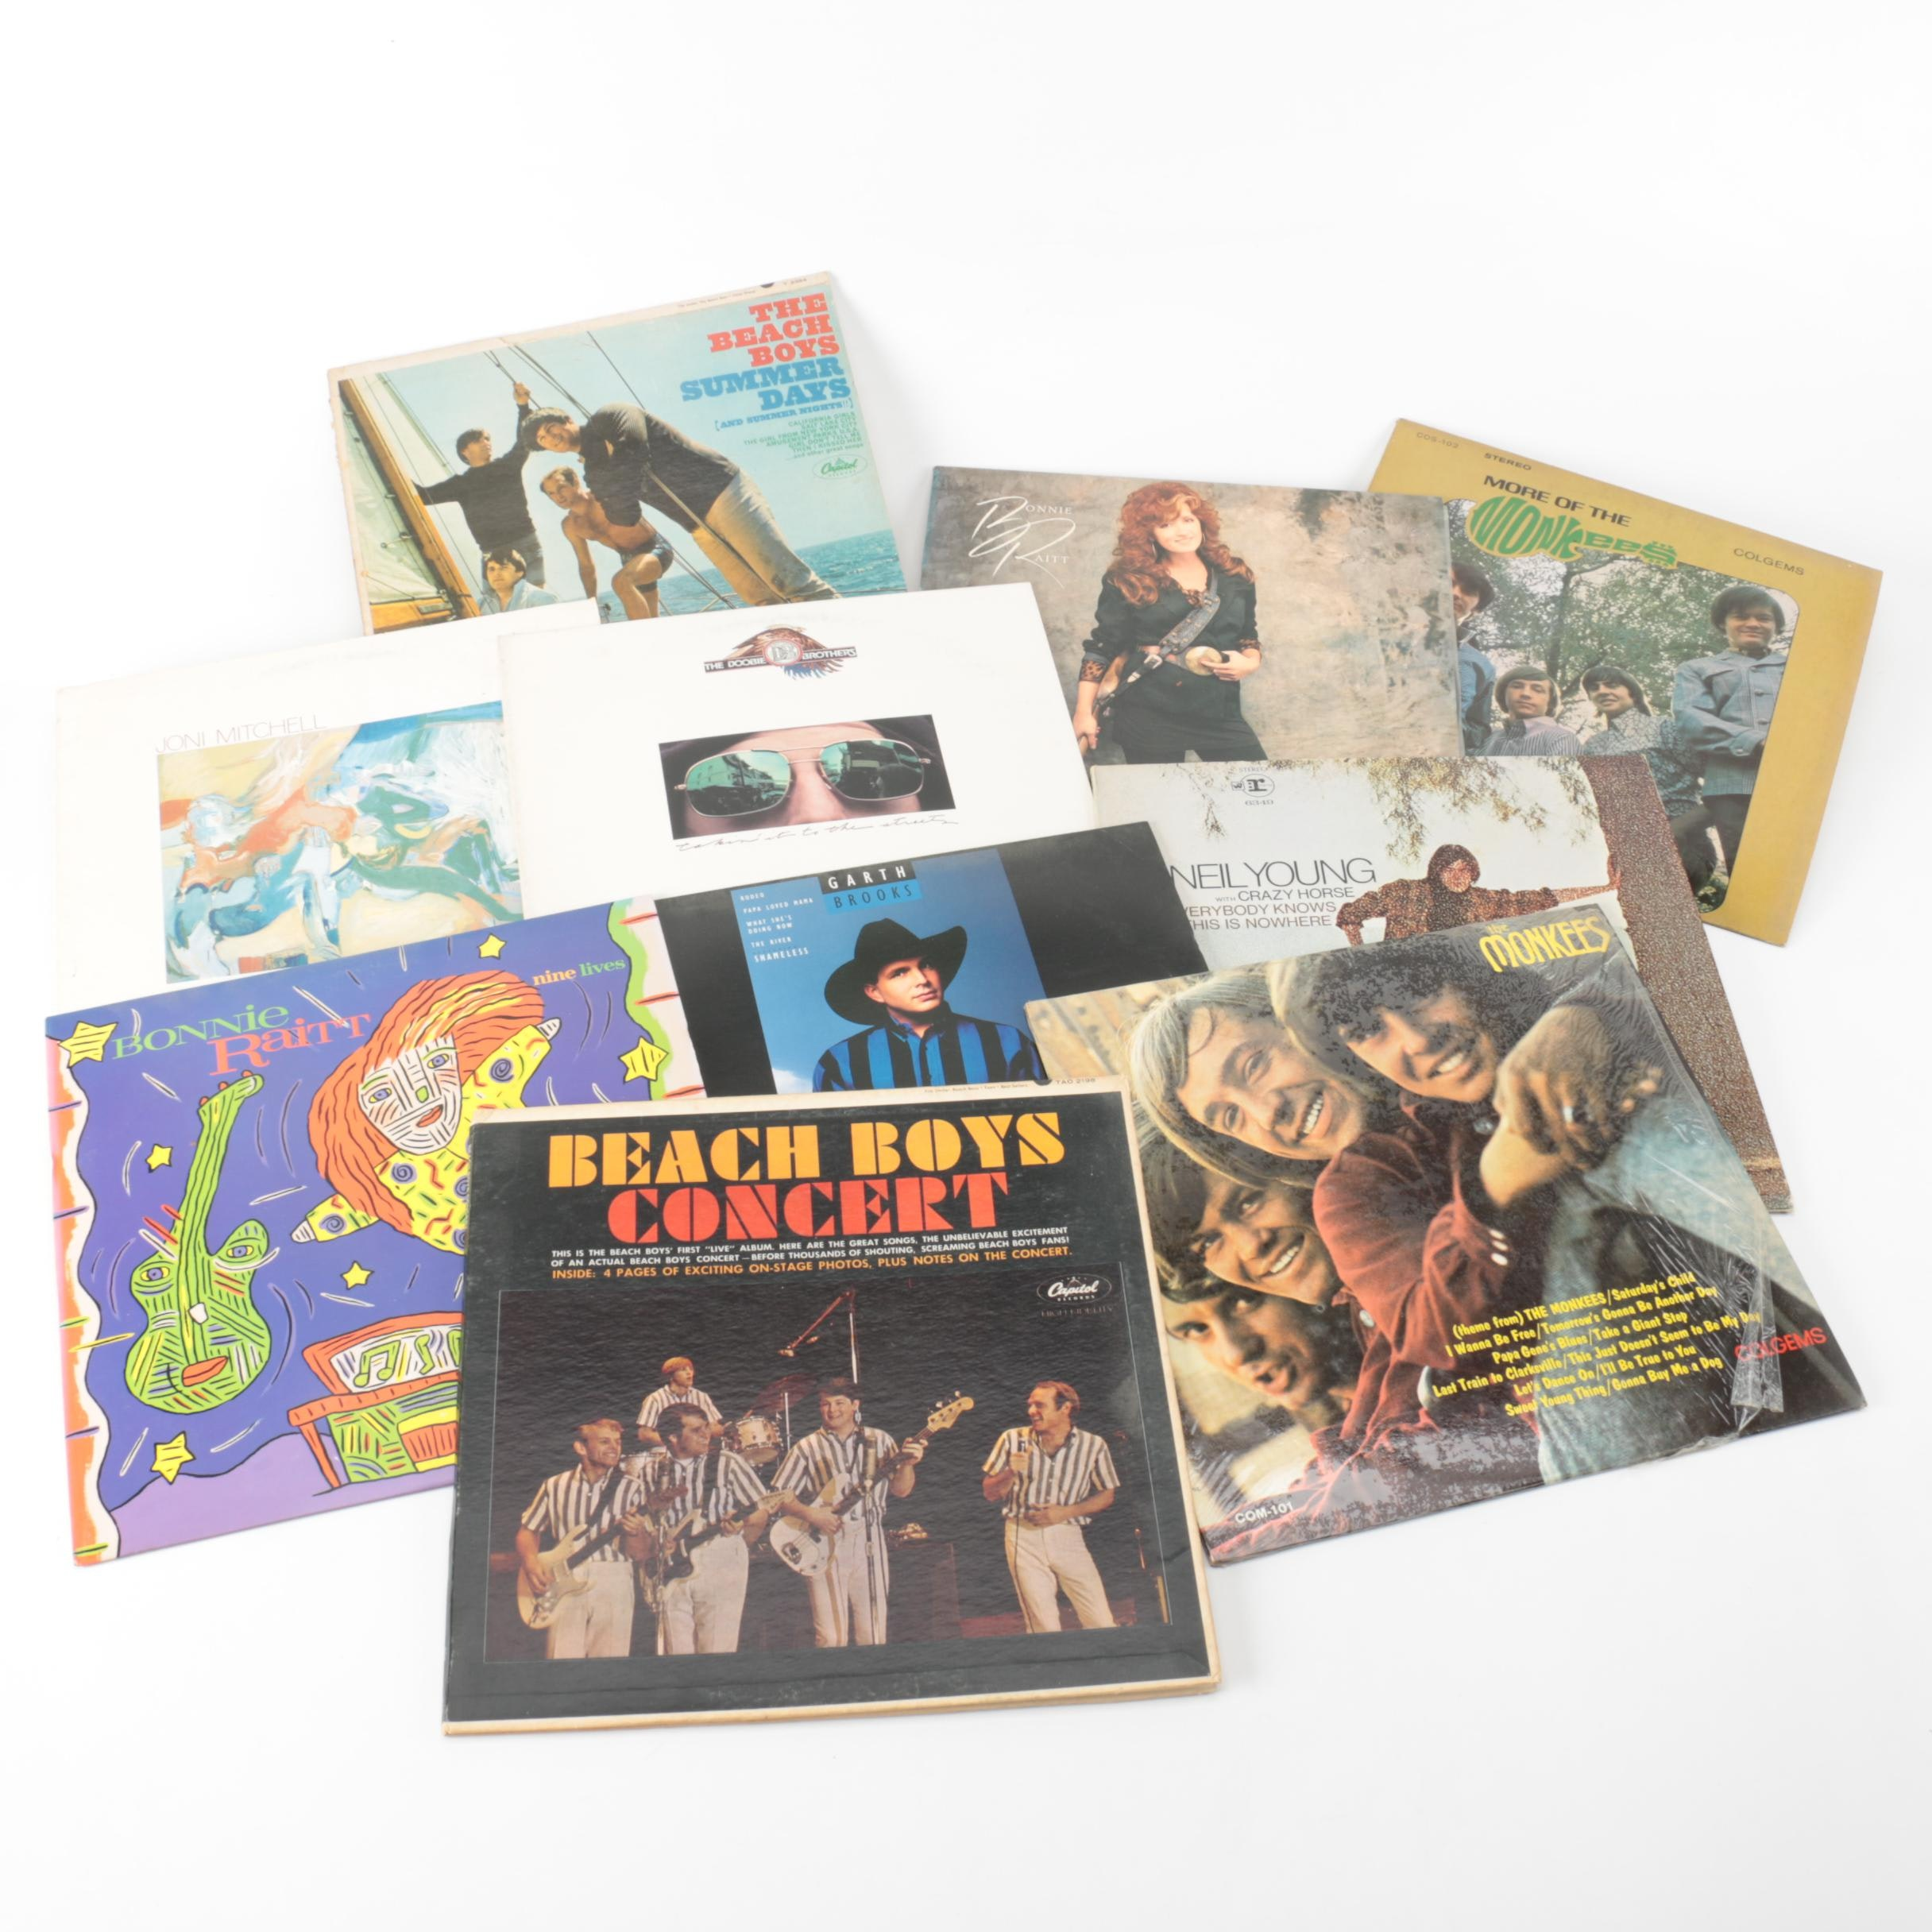 Beach Boys, Monkees, Garth Brooks and Other Rock and Country LPs